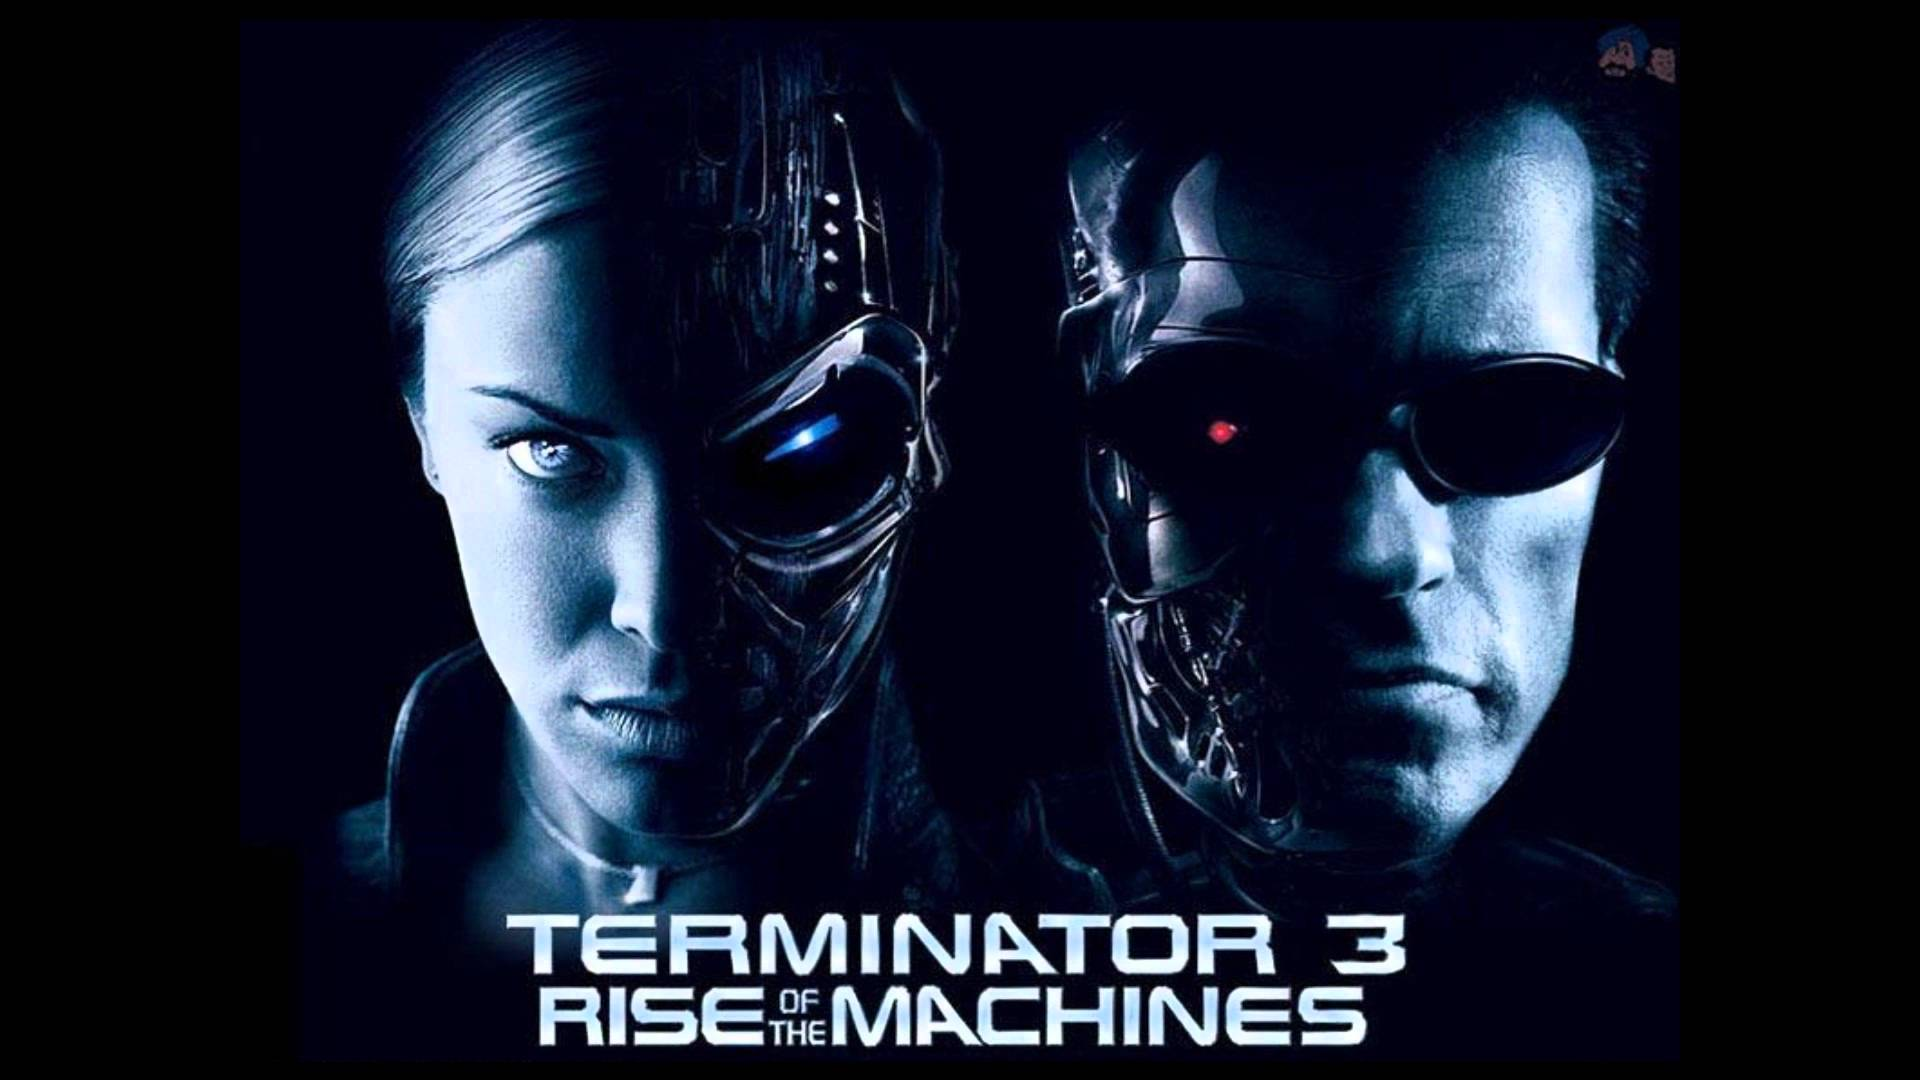 Terminator 3 Rise of the Machines (2003) filme online HD subtitrat în Română